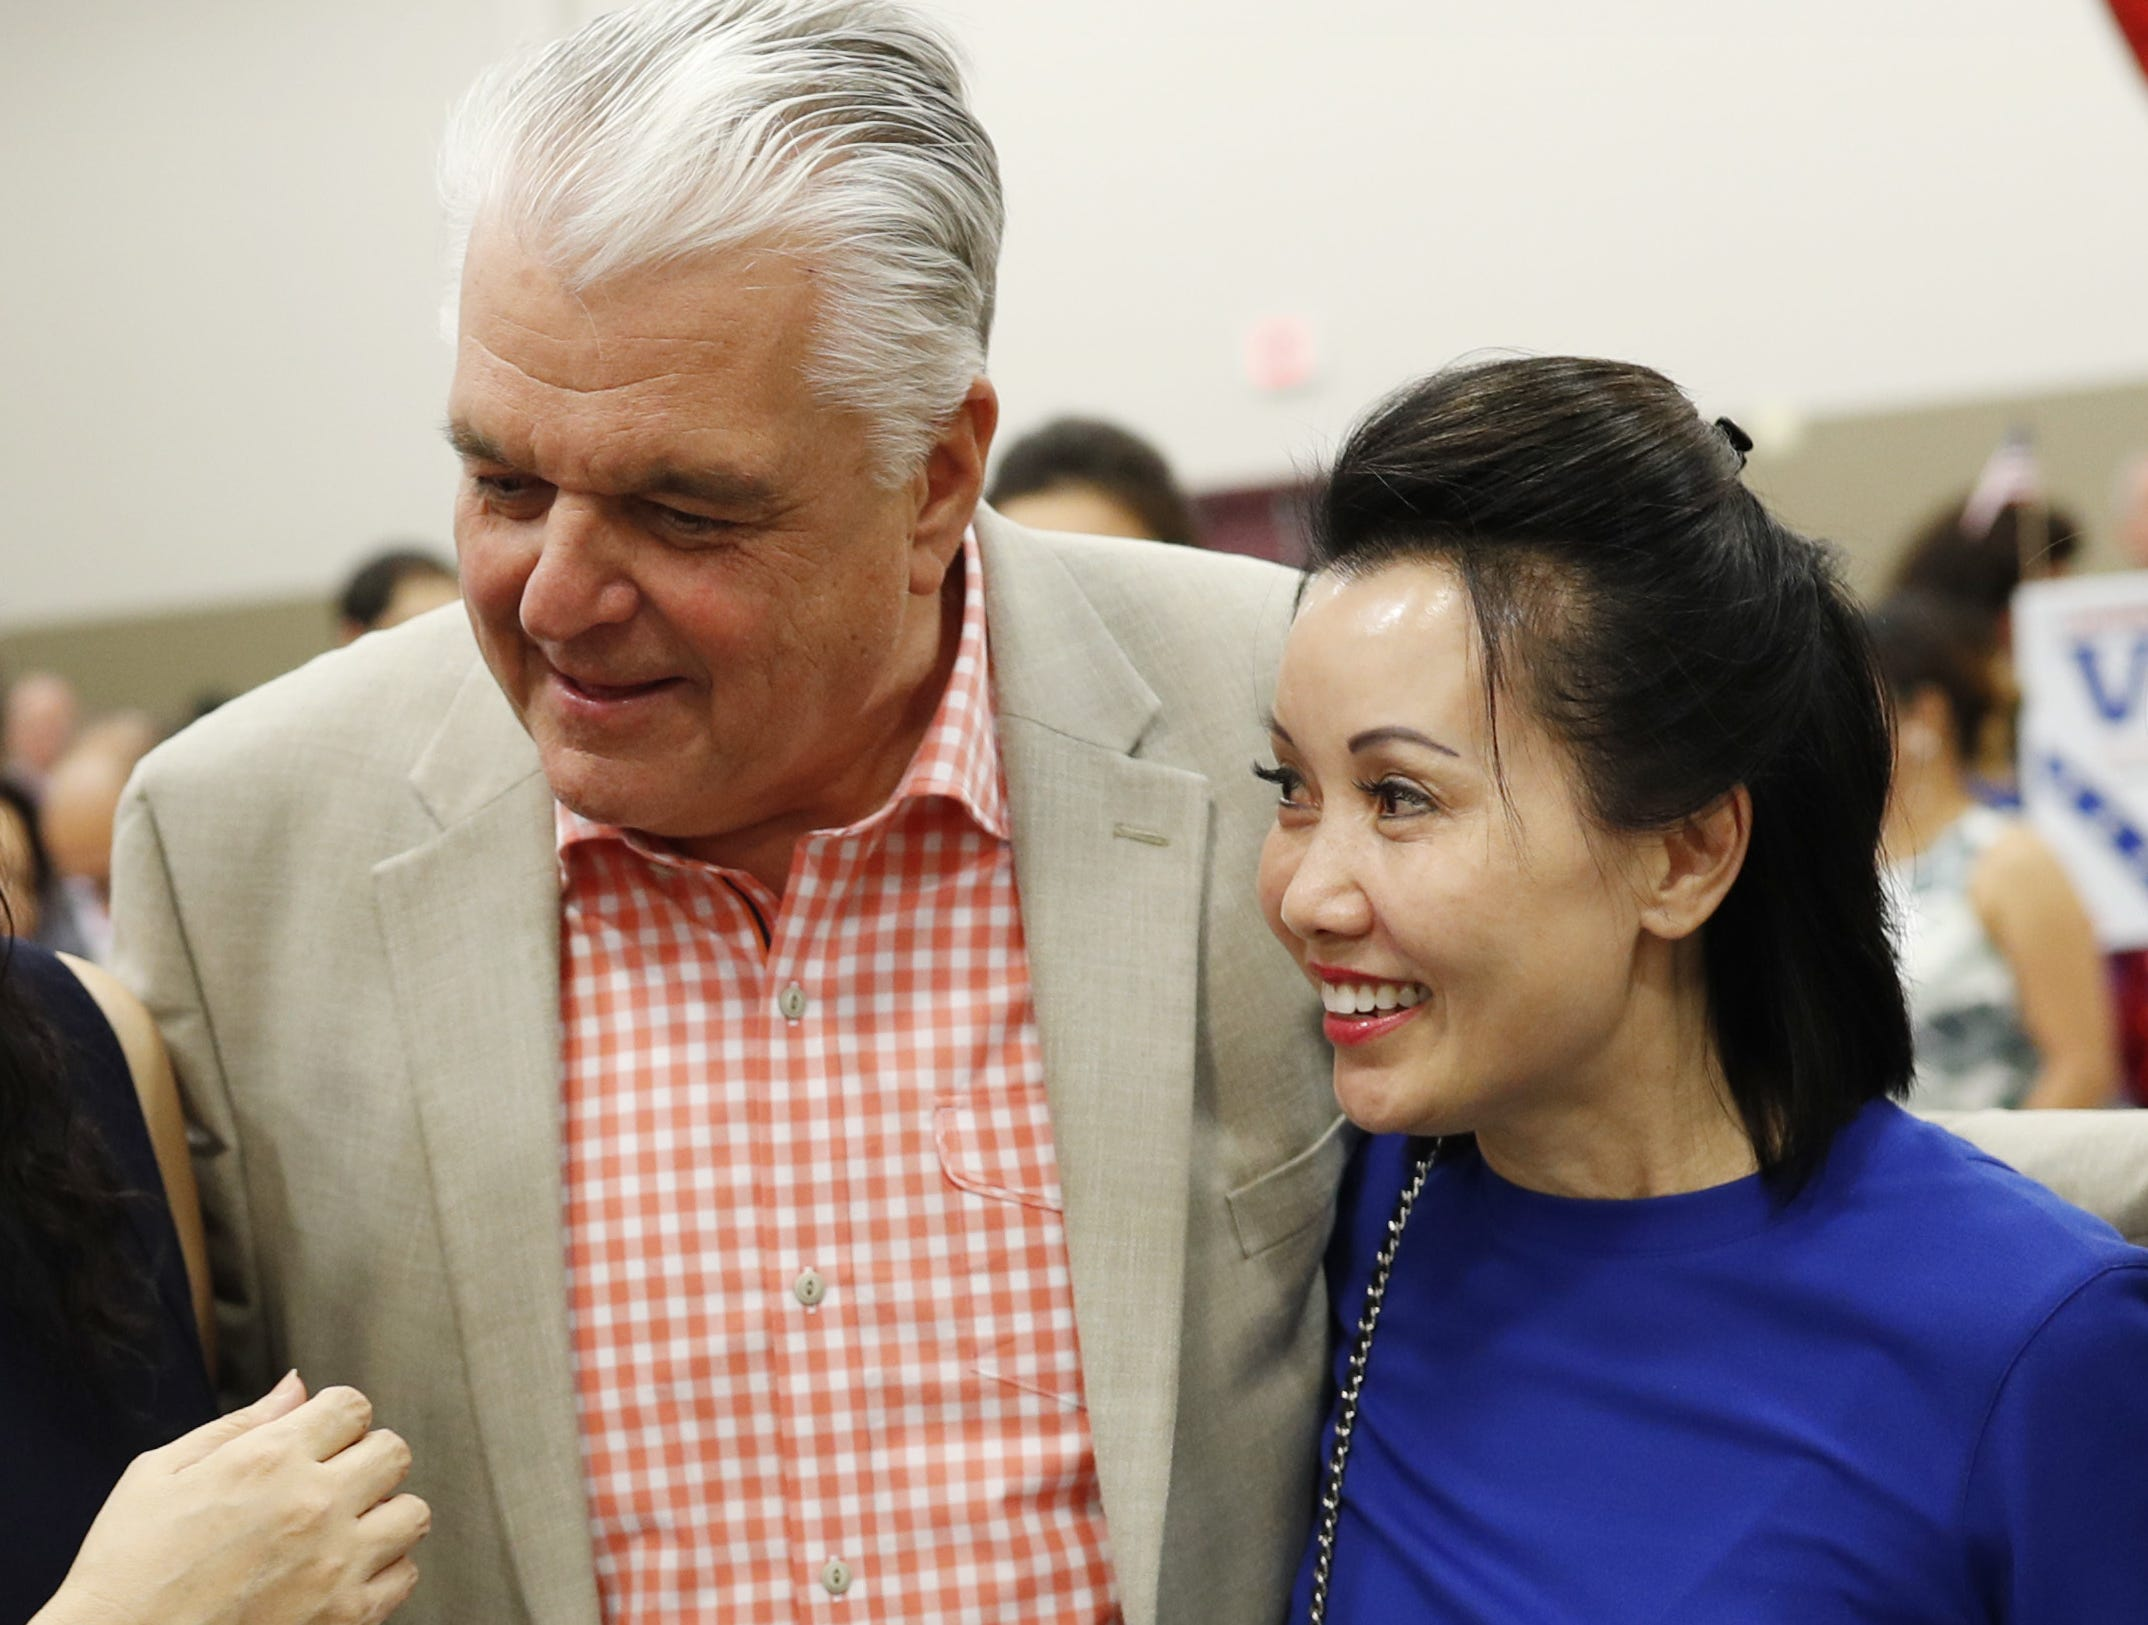 Governor-elect Steve Sisolak and his fianceè, Kathy Ong, at a campaign event in August.